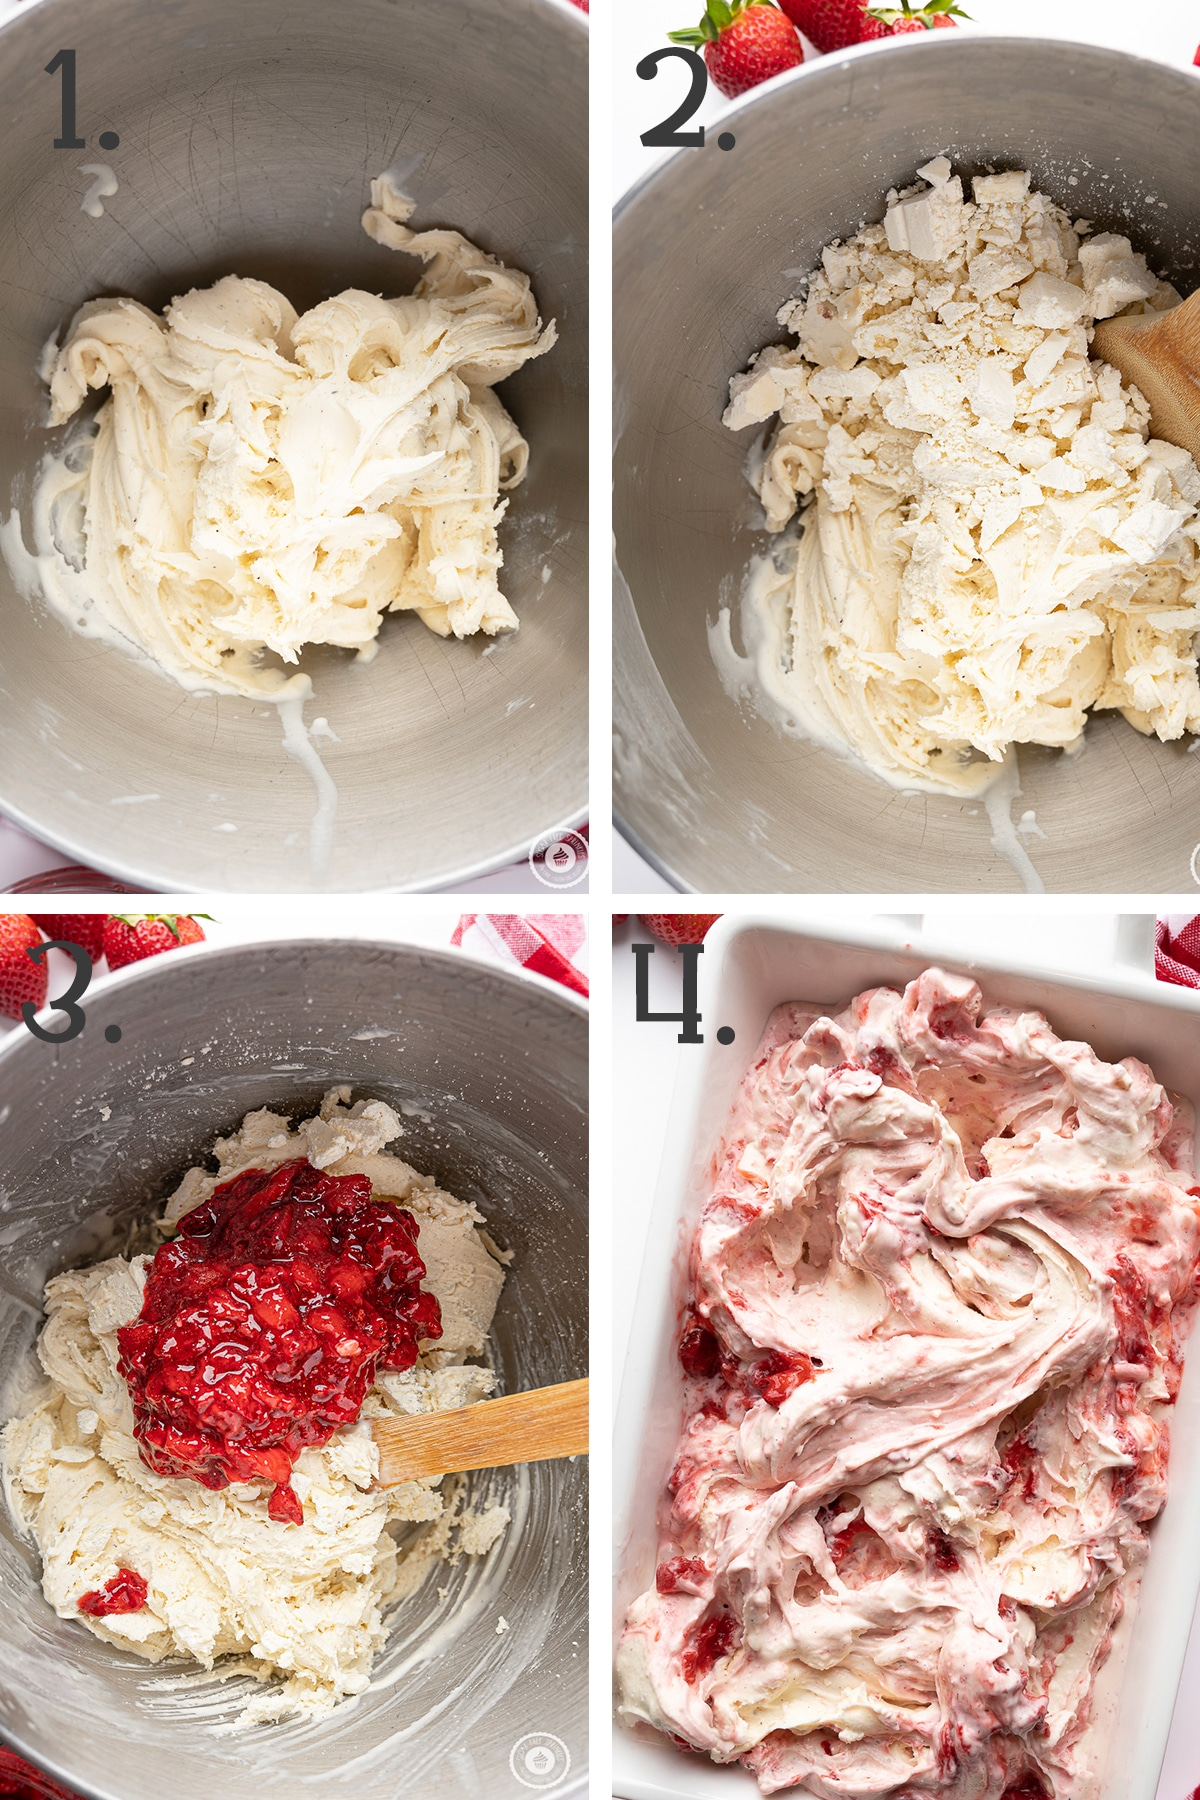 Four panel in process photographs showing how to mix the cheesecake bits and strawberry ripple into the ice cream.